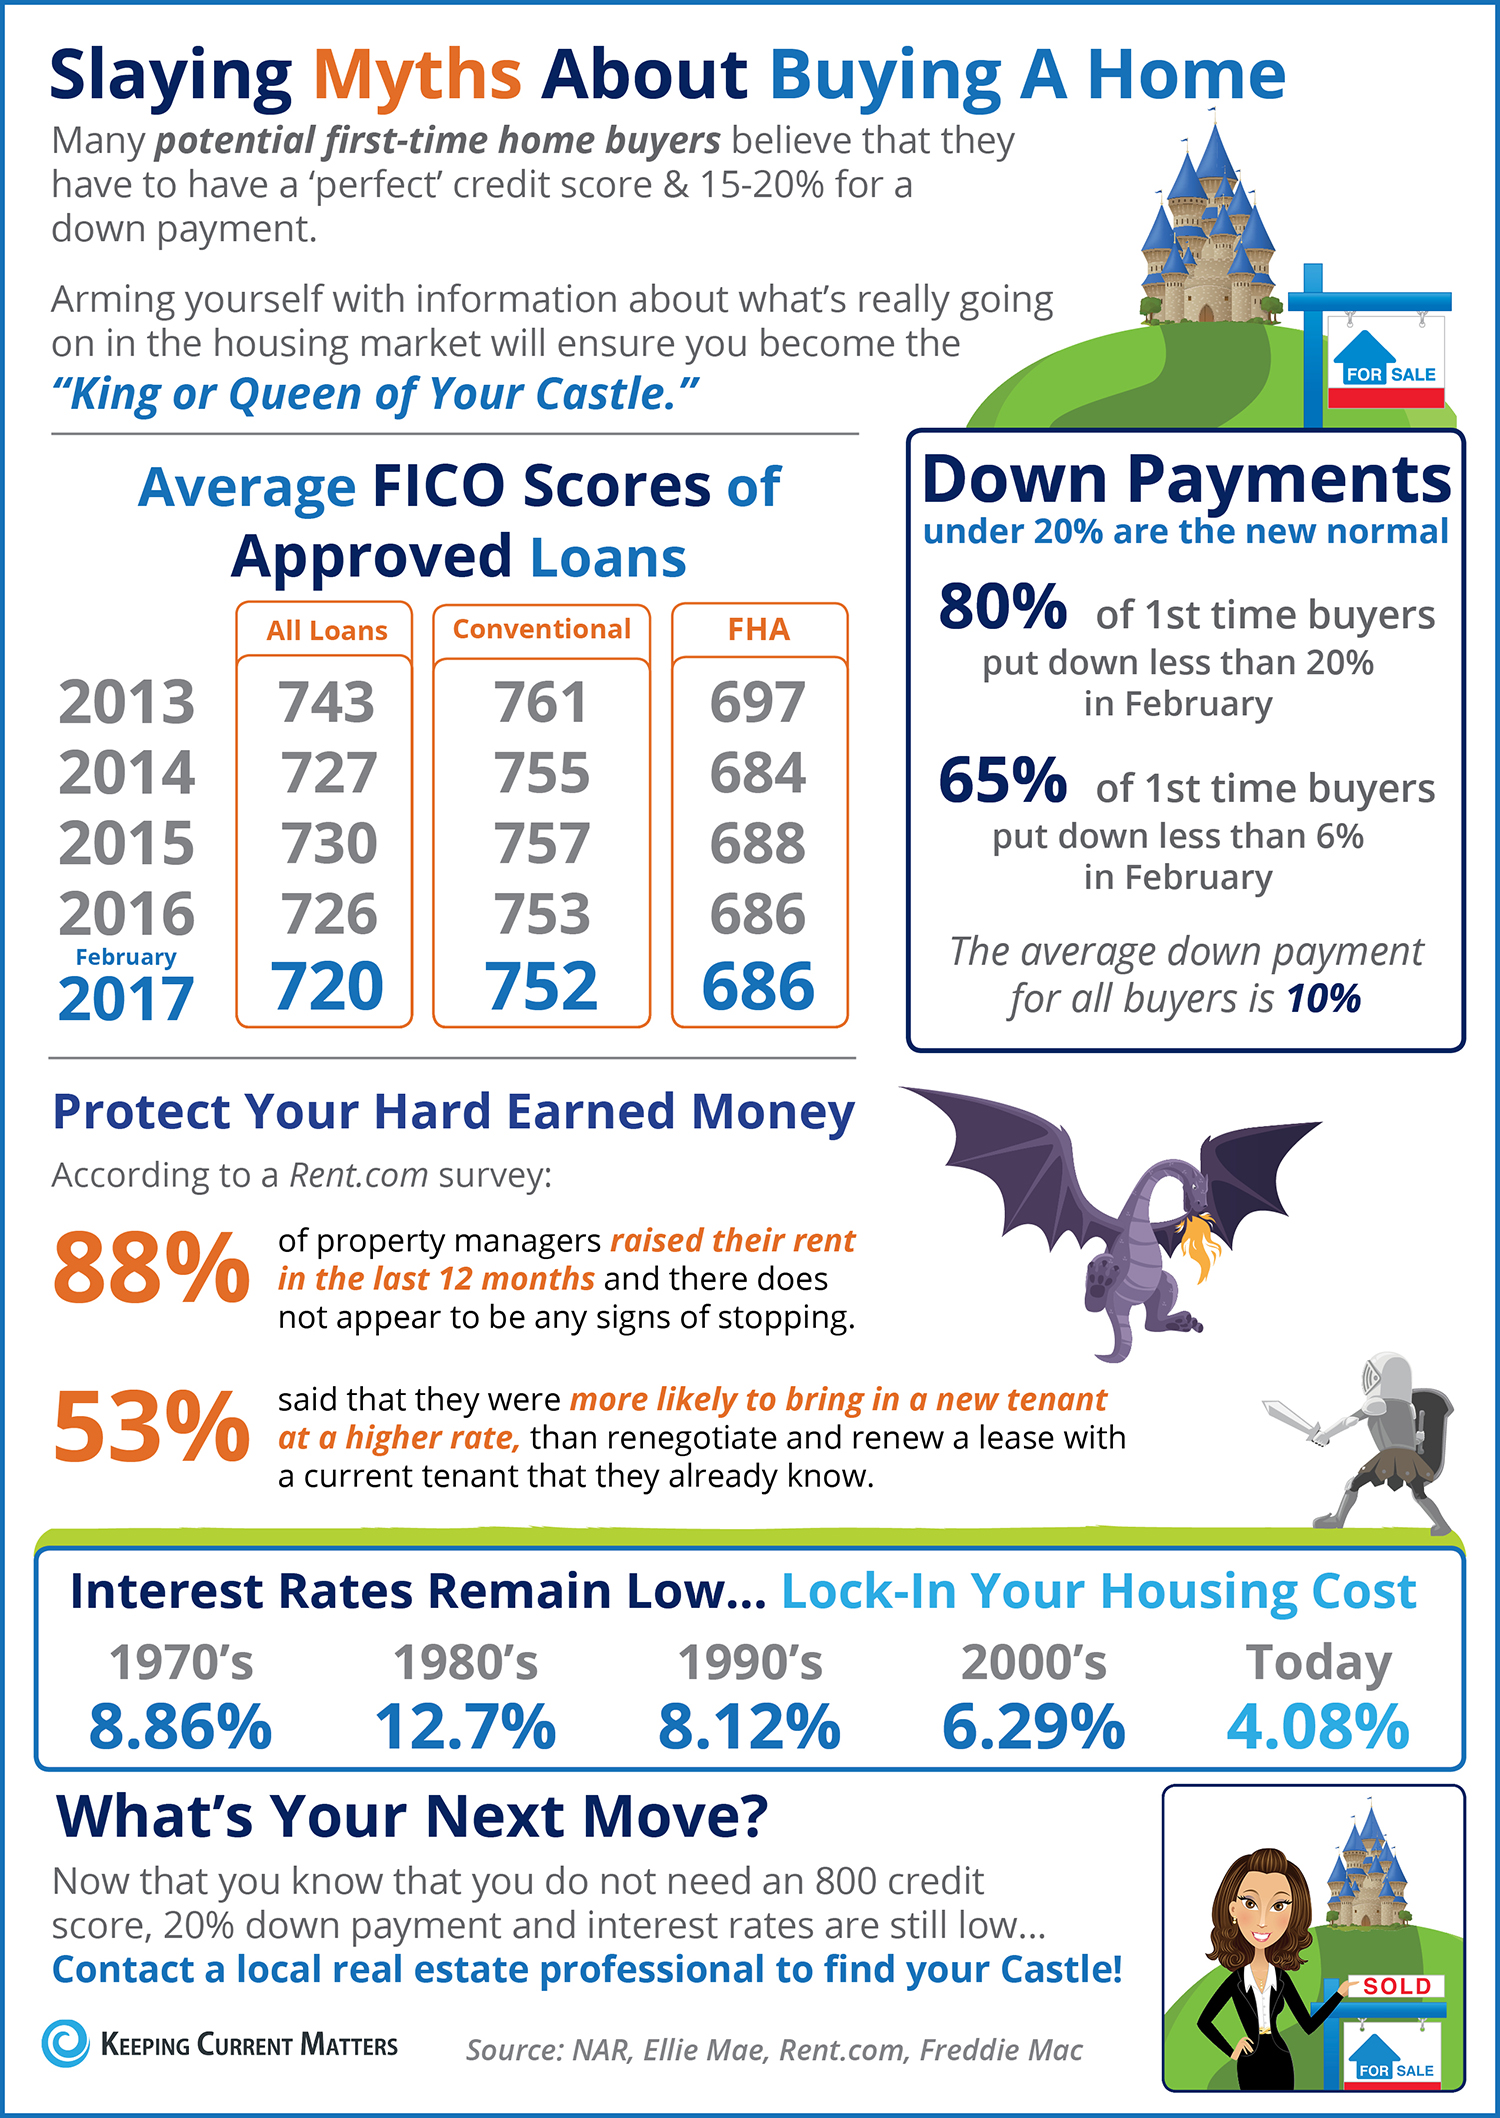 Slaying Home Buying Myths [INFOGRAPHIC] | Keeping Current Matters